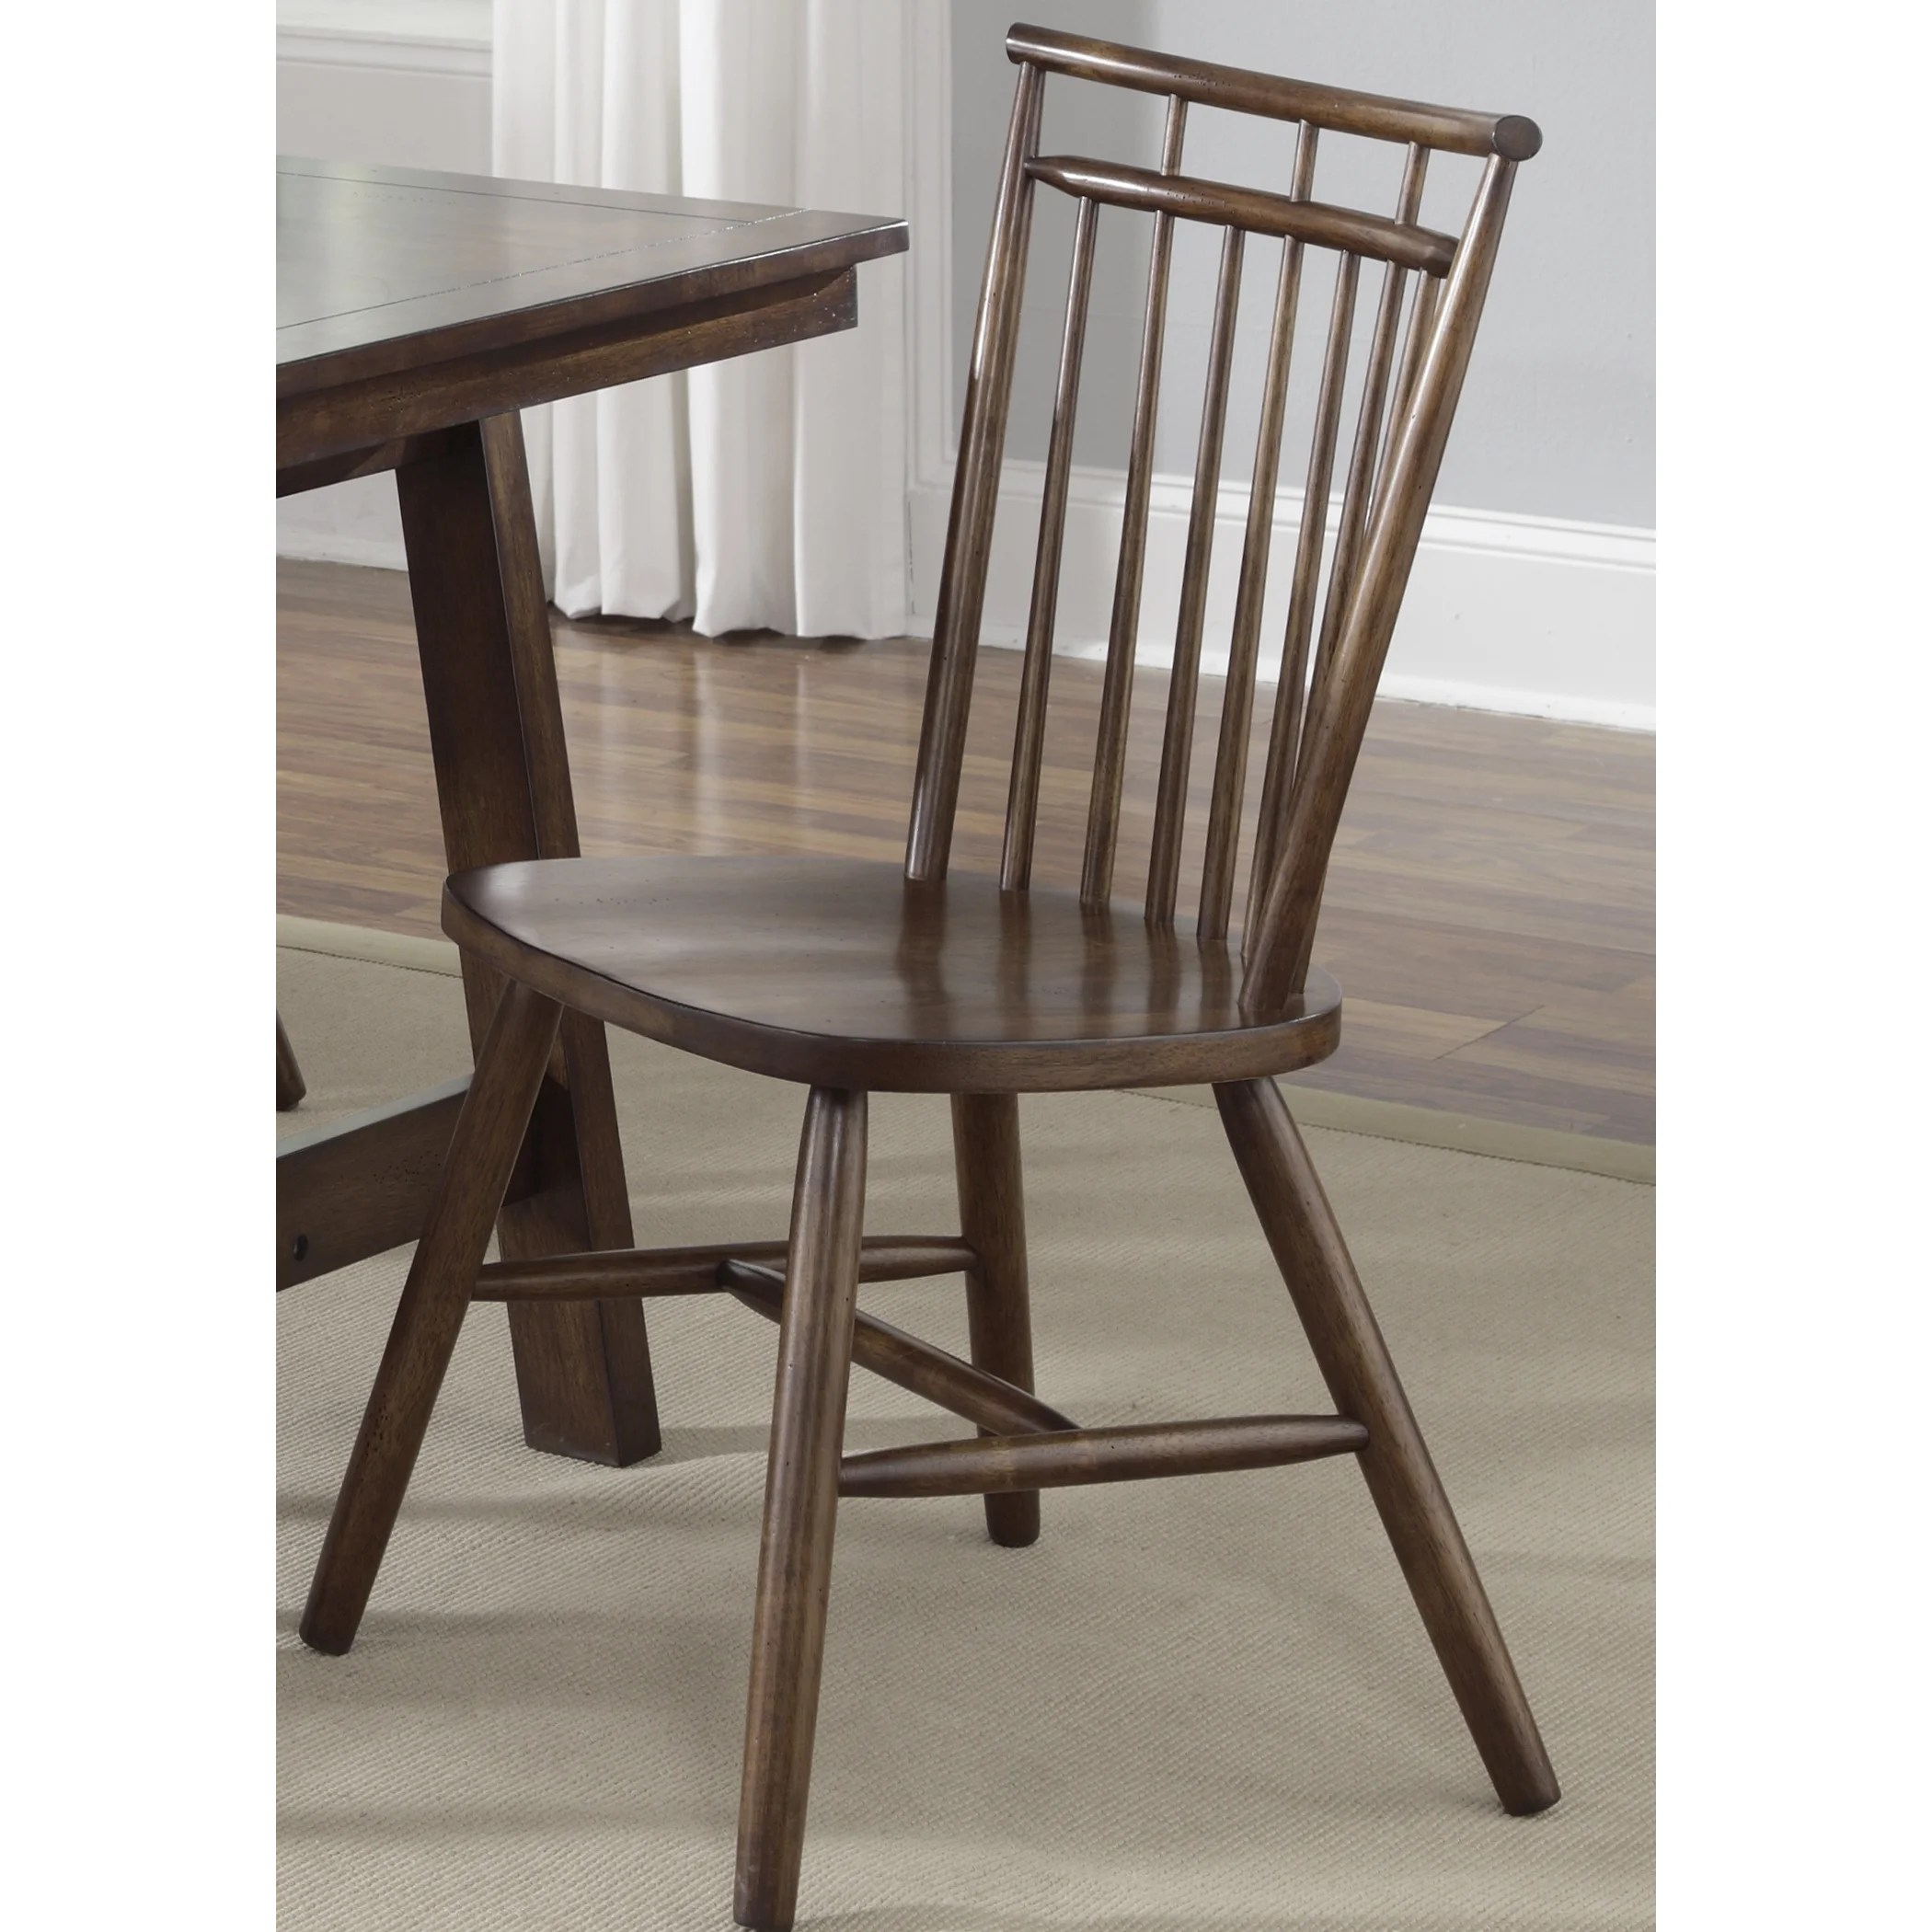 Spindle Dining Chairs Shop Creations Tobacco Lifestyle Spindle Back Dining Chair